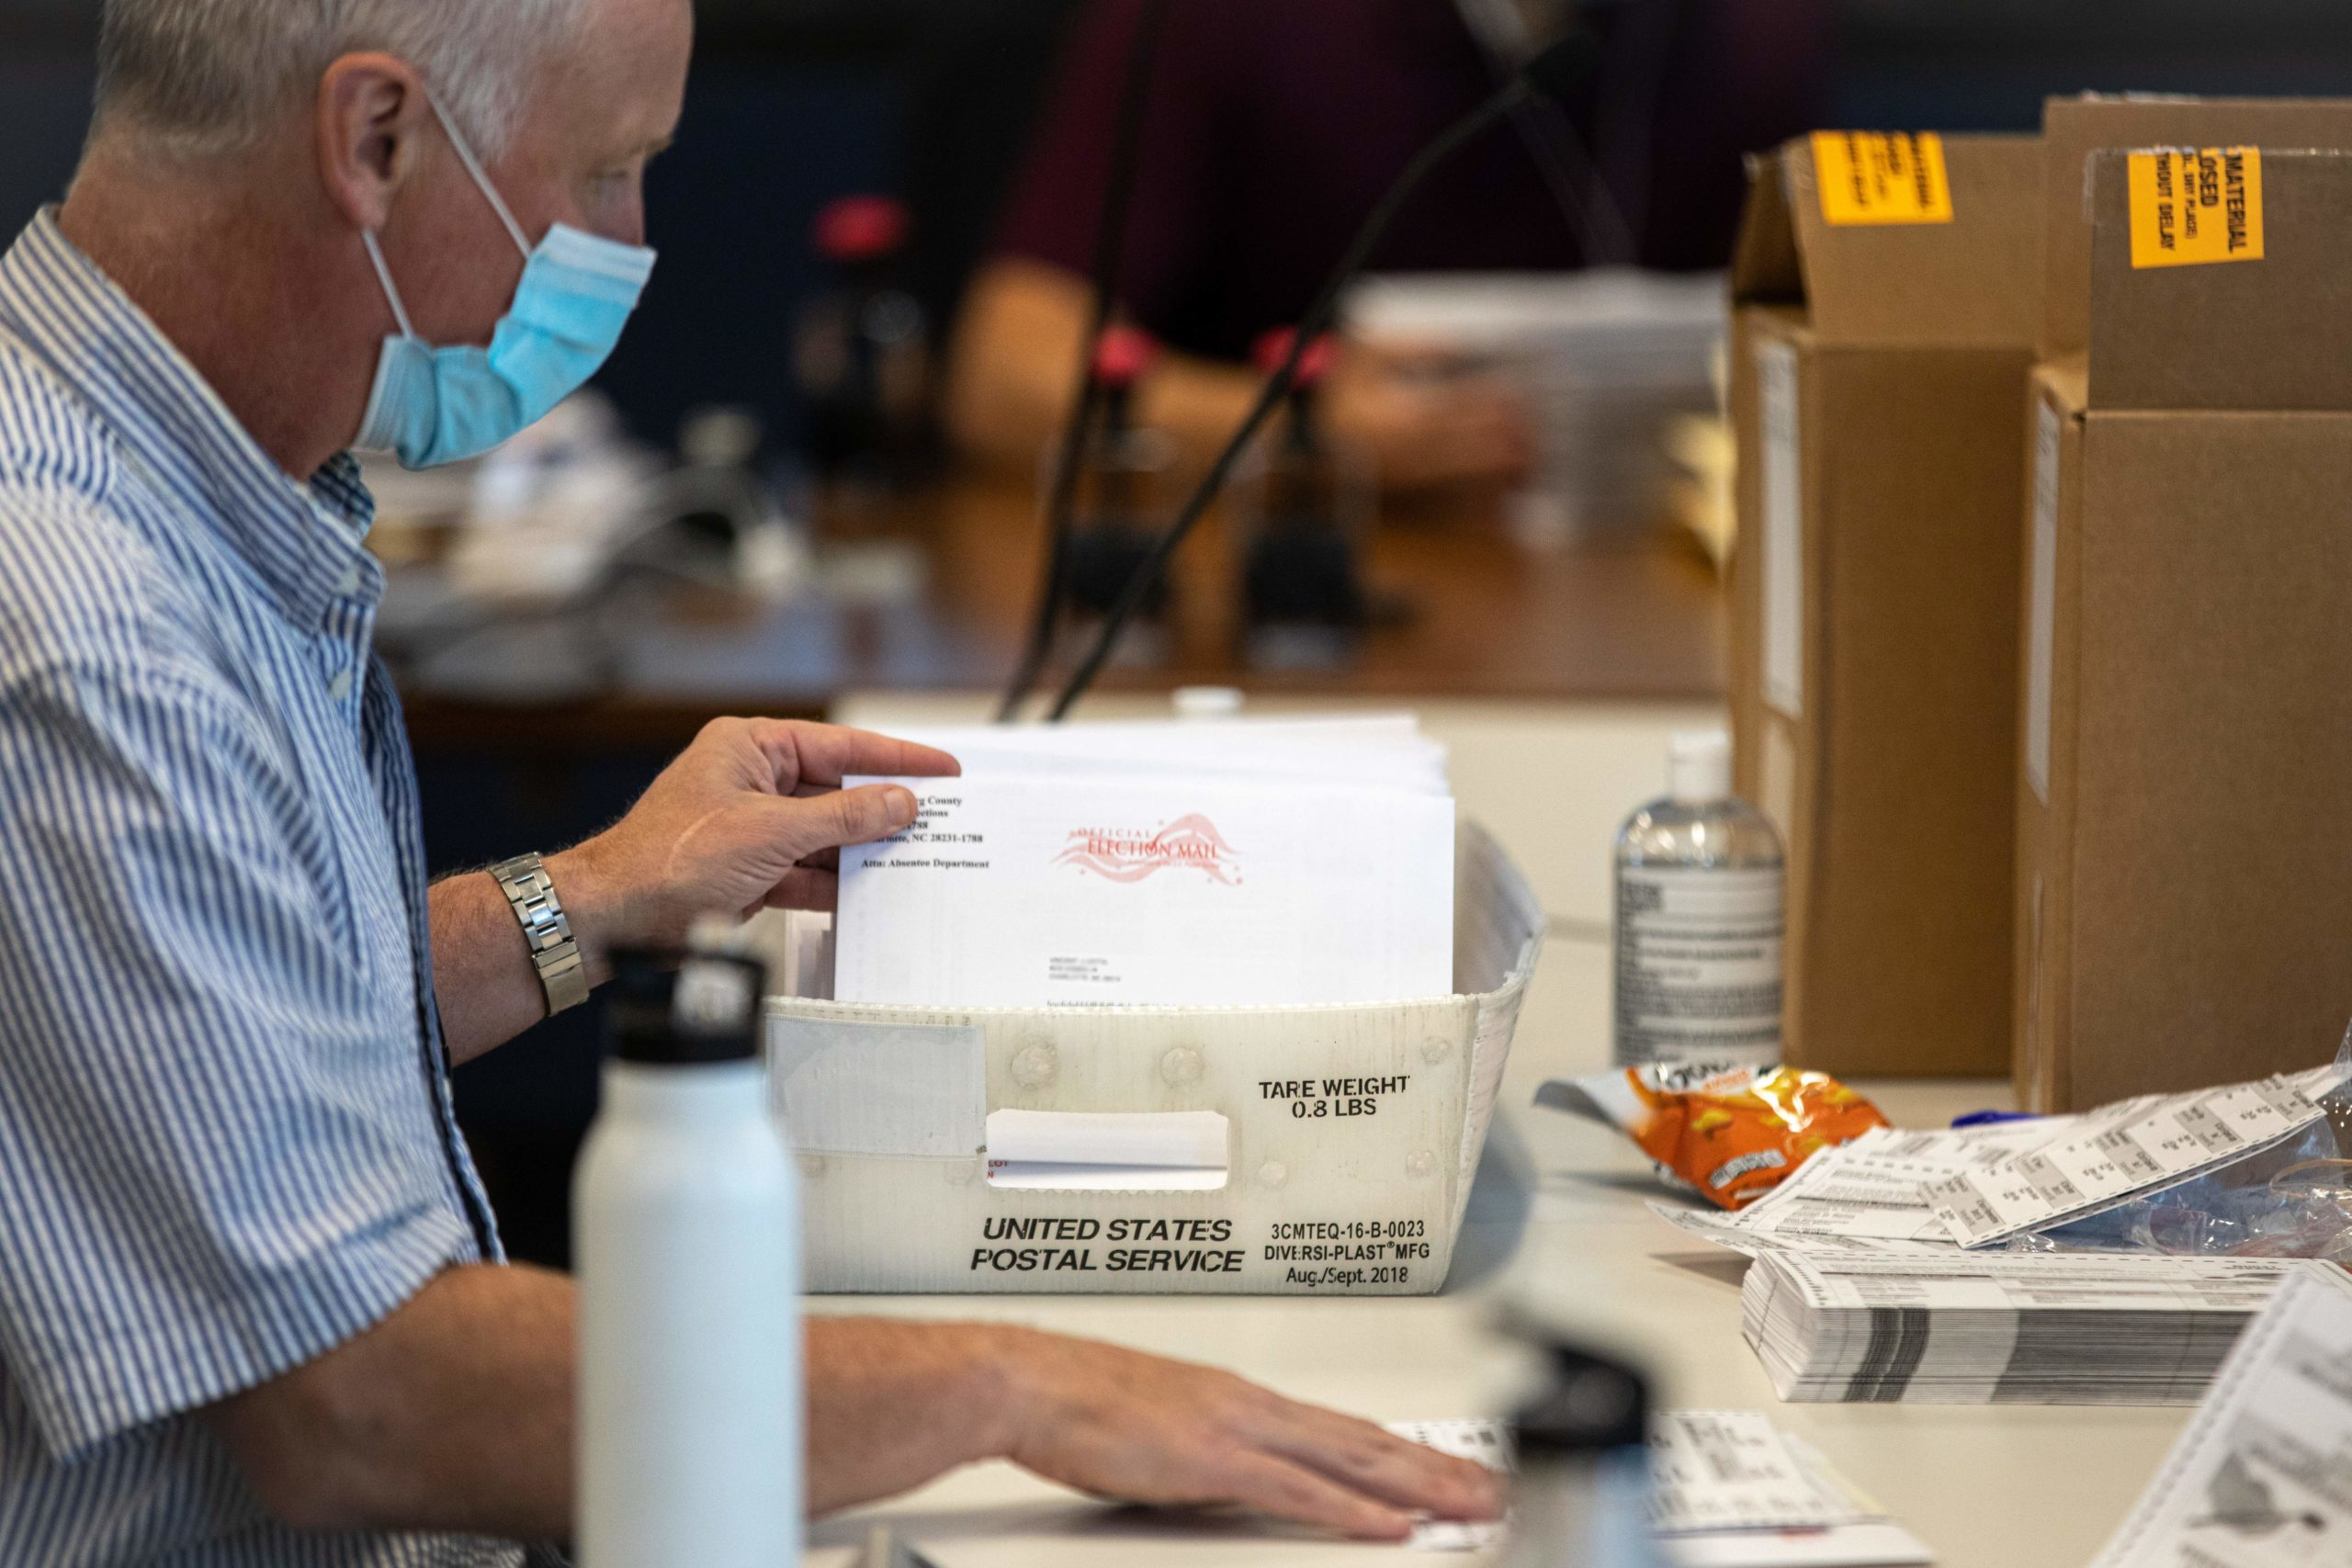 Absentee ballot election workers stuff ballot applications at the Mecklenburg County Board of Elections office in Charlotte, North Carolina on September 4, 2020. (LOGAN CYRUS/AFP via Getty Images)